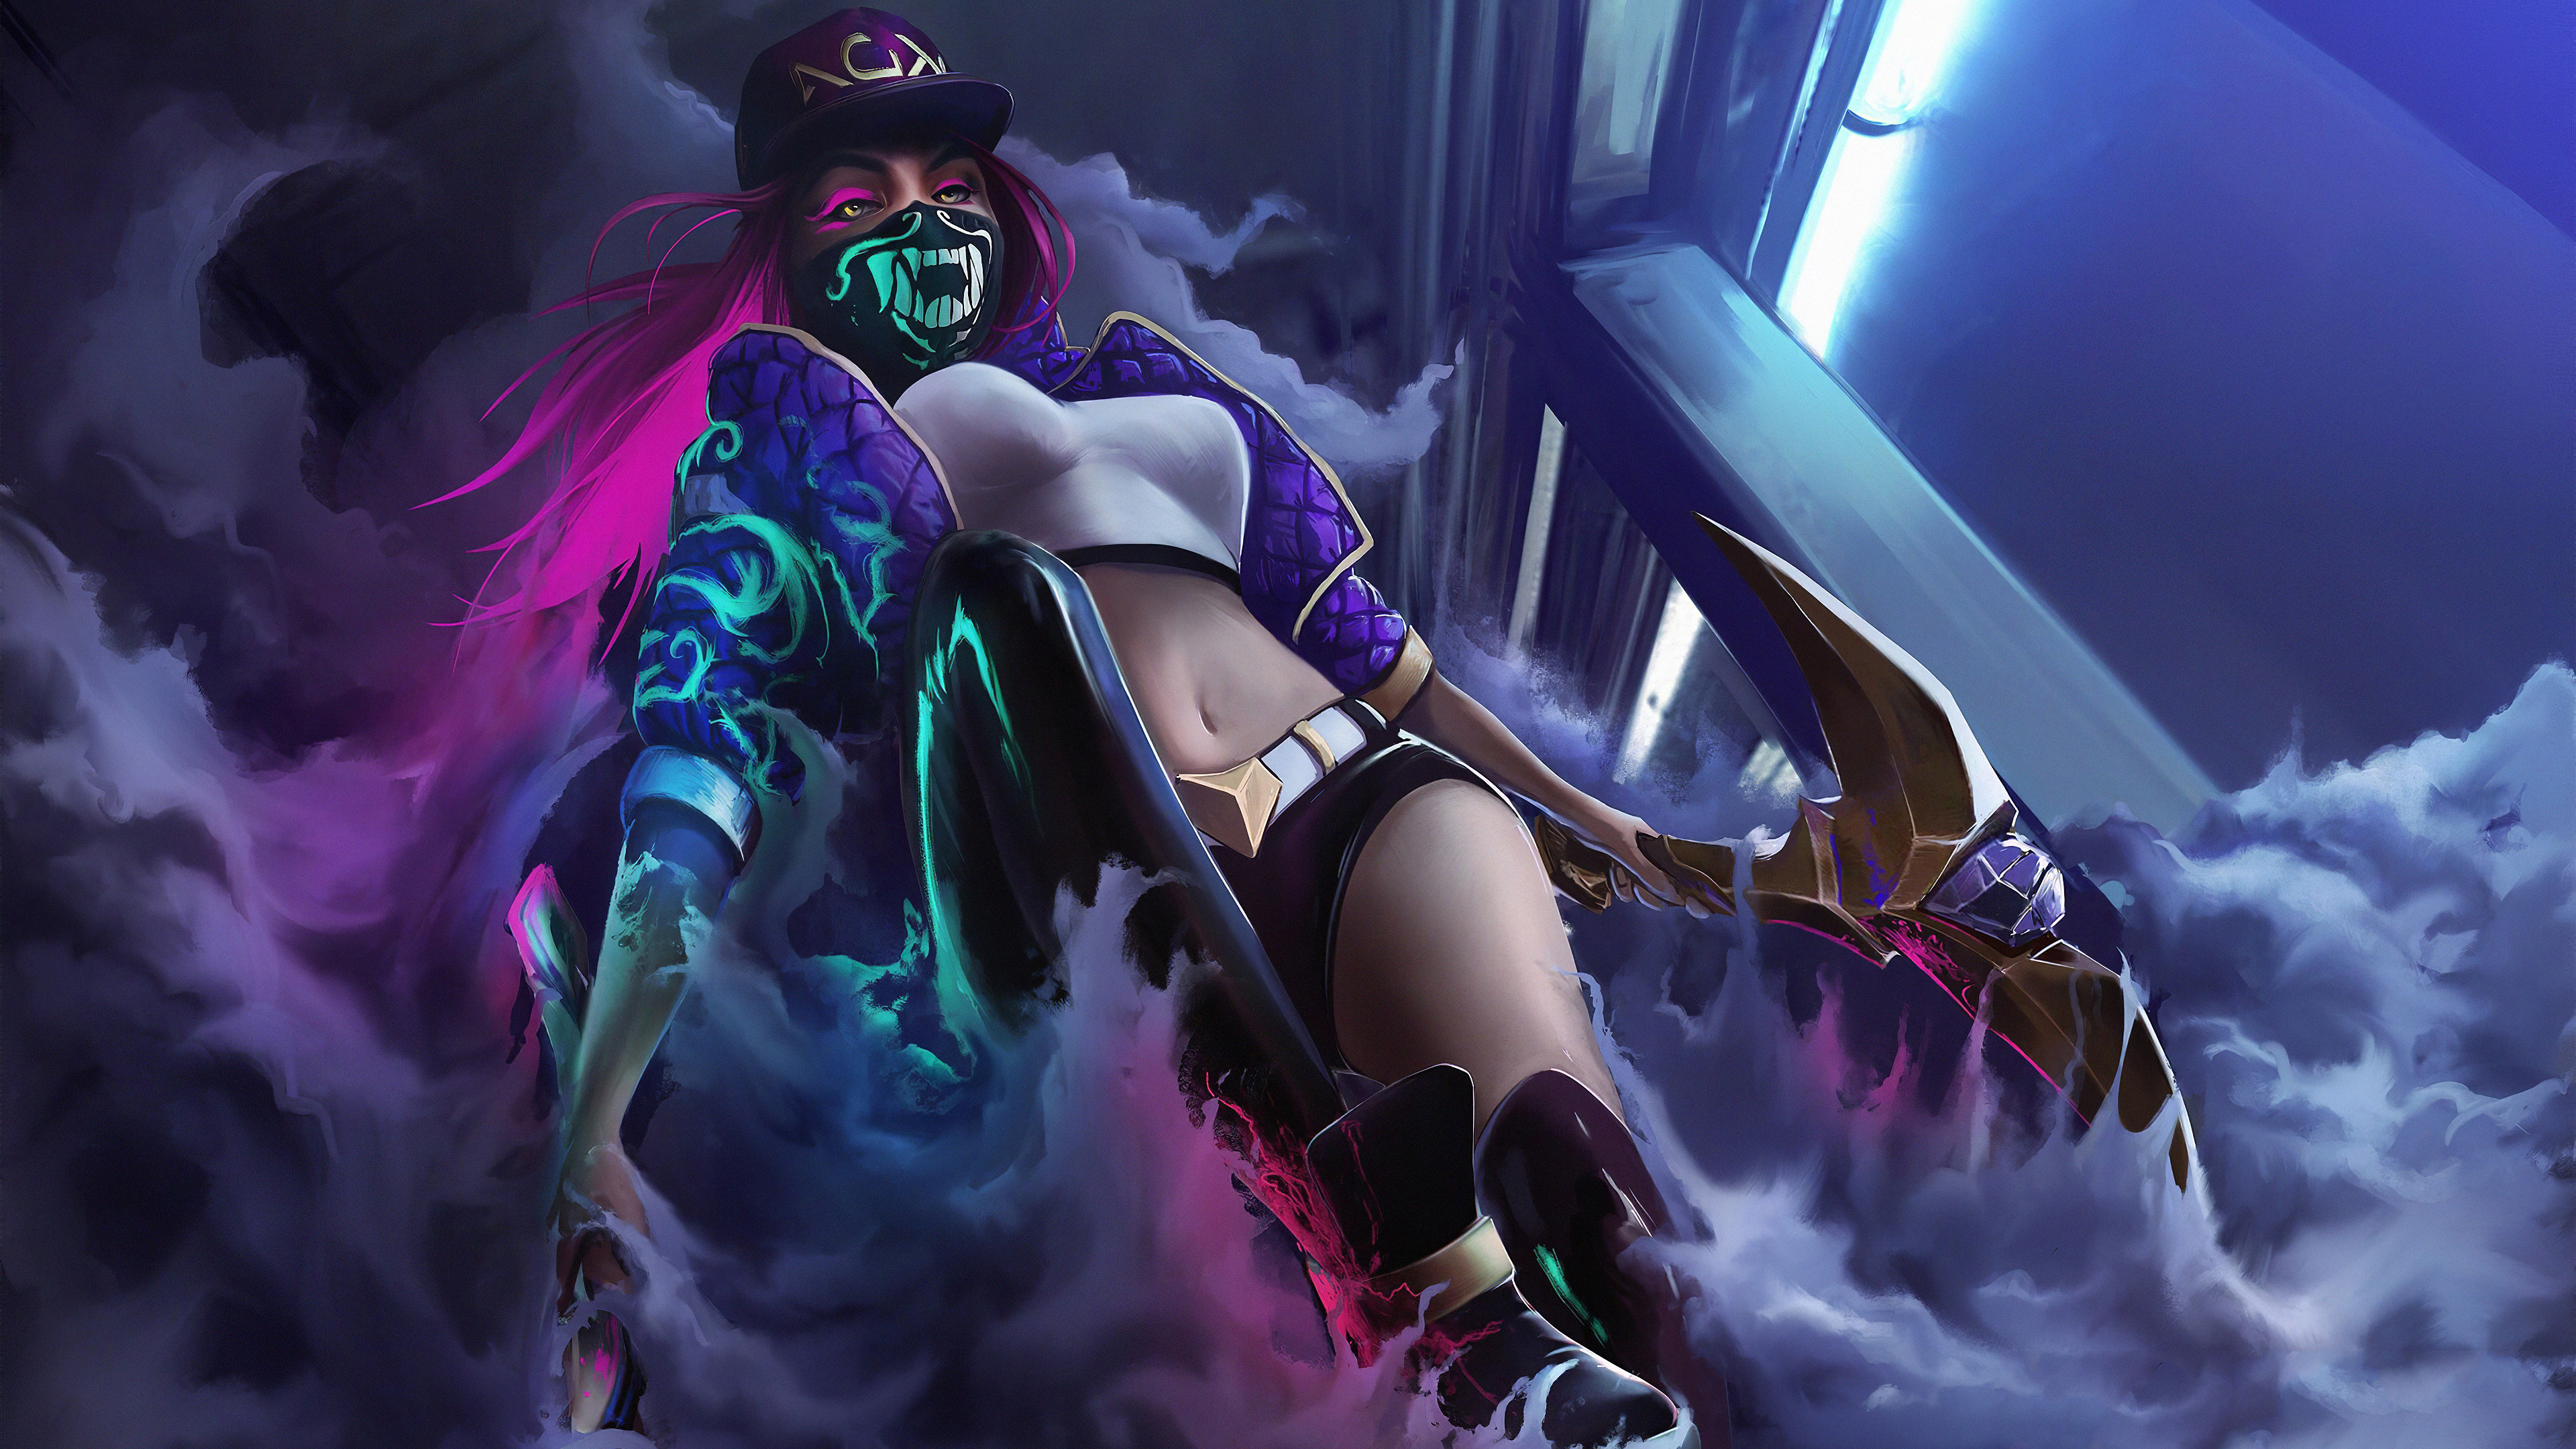 kda akali lolart 8o 3840x2160 1 - Kda Akali Lol - Kda Akali wallpapers, Kda Akali phone wallpapers, Kda Akali 4k wallpapers art